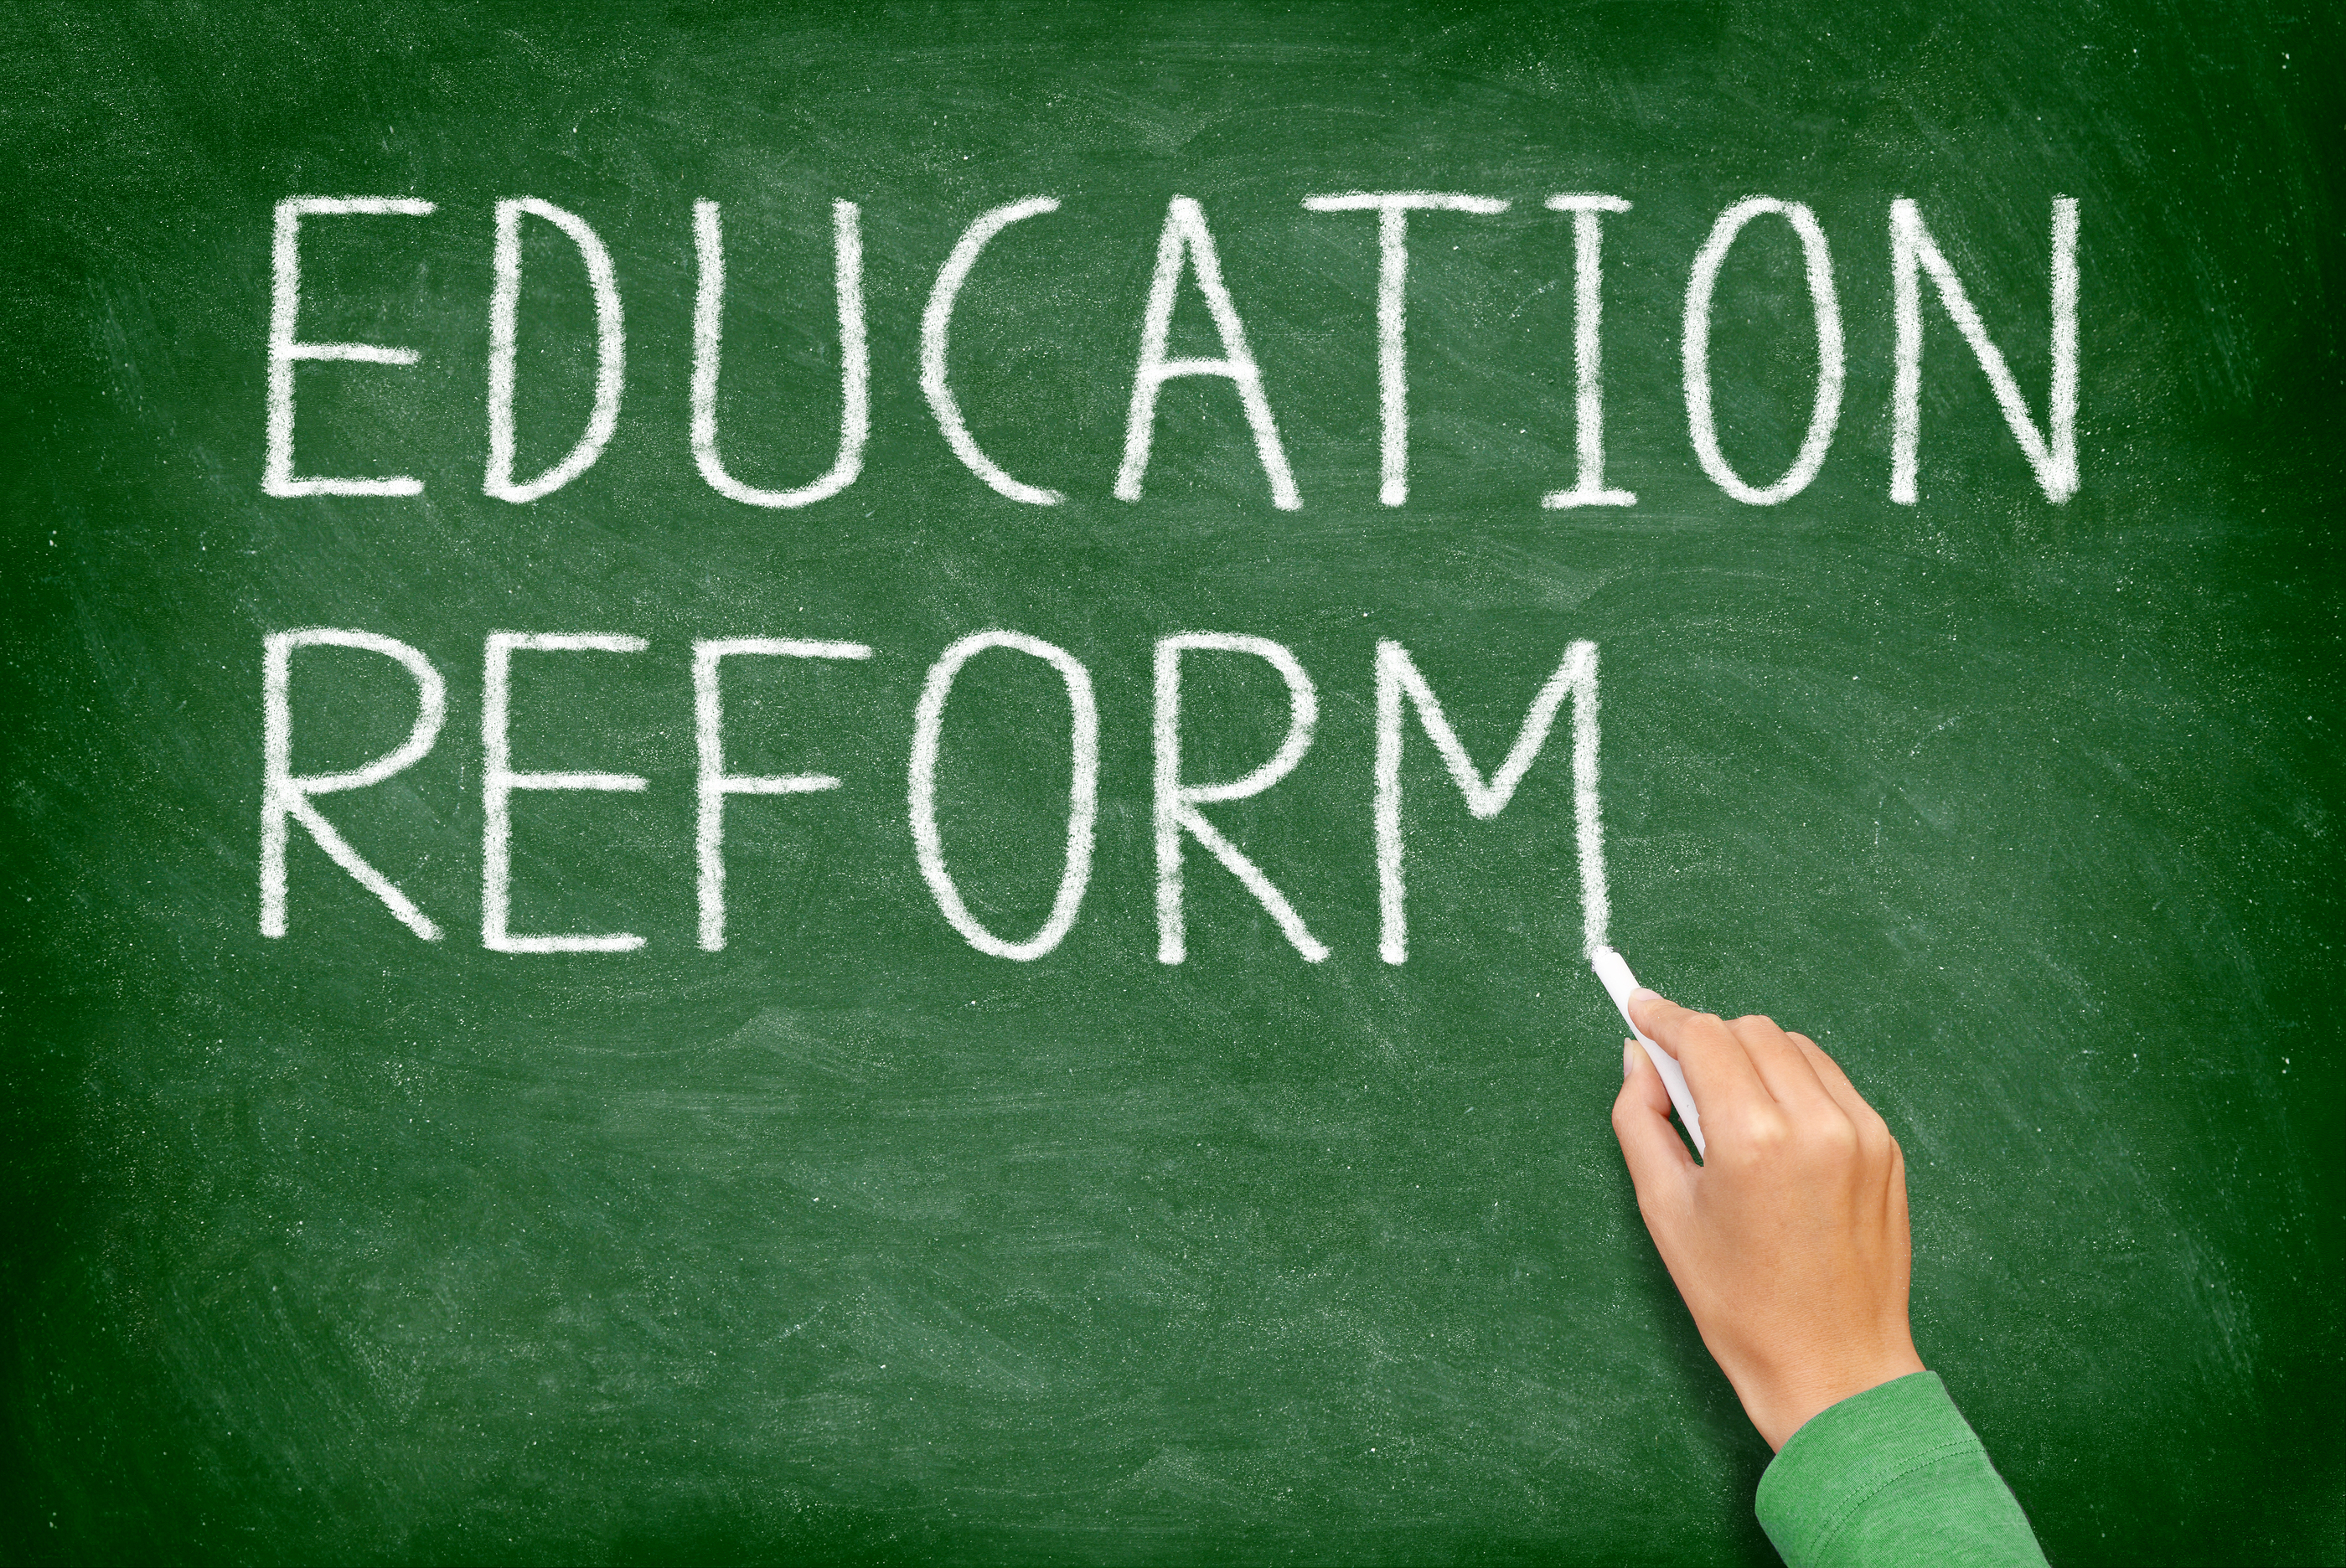 On Education Reform And Other Stuff Like That  Image Speech Help also Persuasive Essay Ideas For High School  Need Help With Writing An Eassy